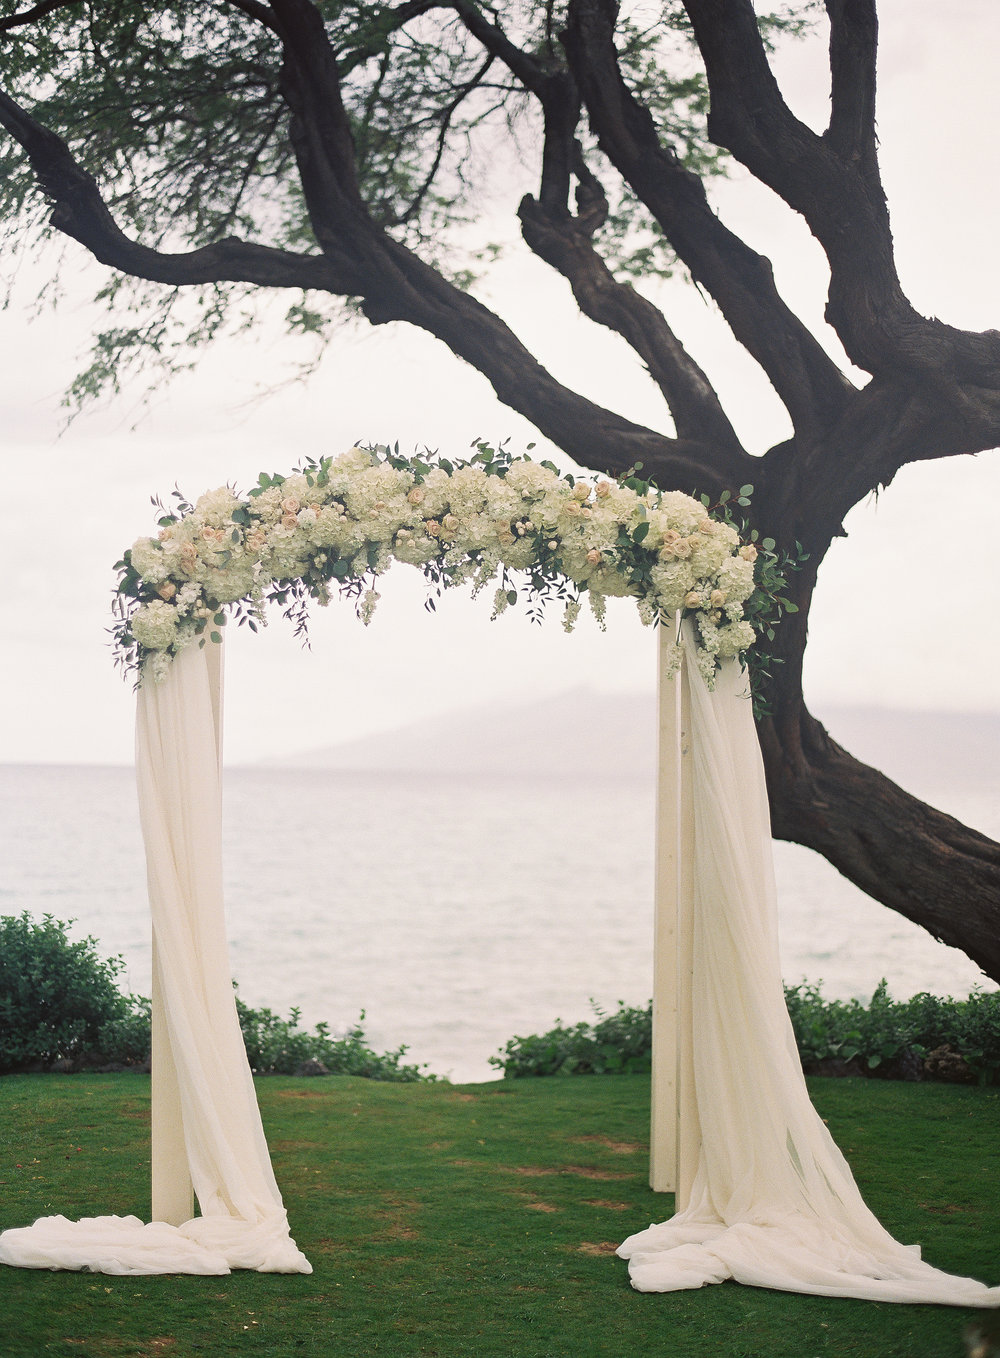 Ivory Curved Wedding Arch — Signature Boutique Event Rentals Maui, Hawaii